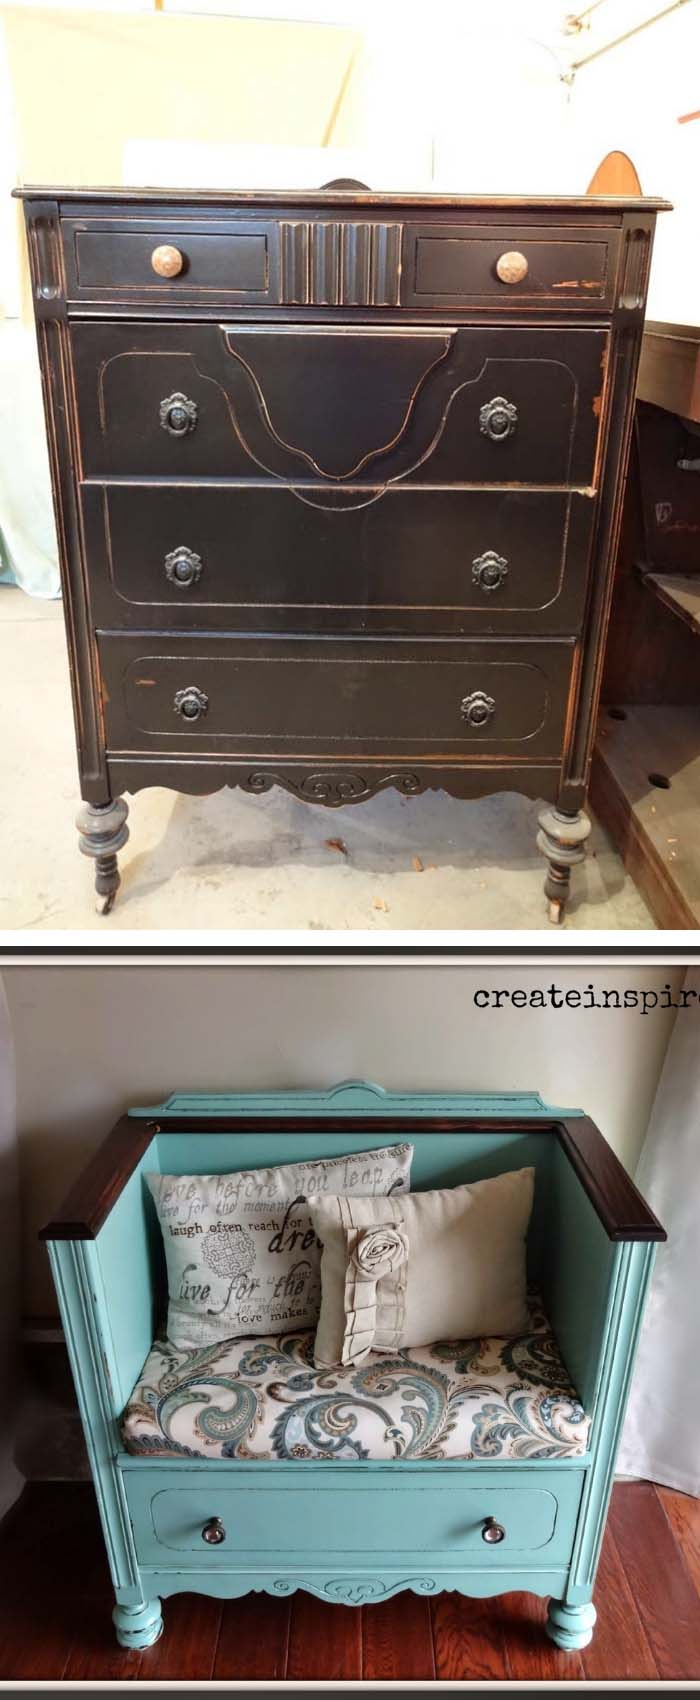 DIY Dresser Turned Bench #diy #furniture #makeover #repurpose #decorhomeideas